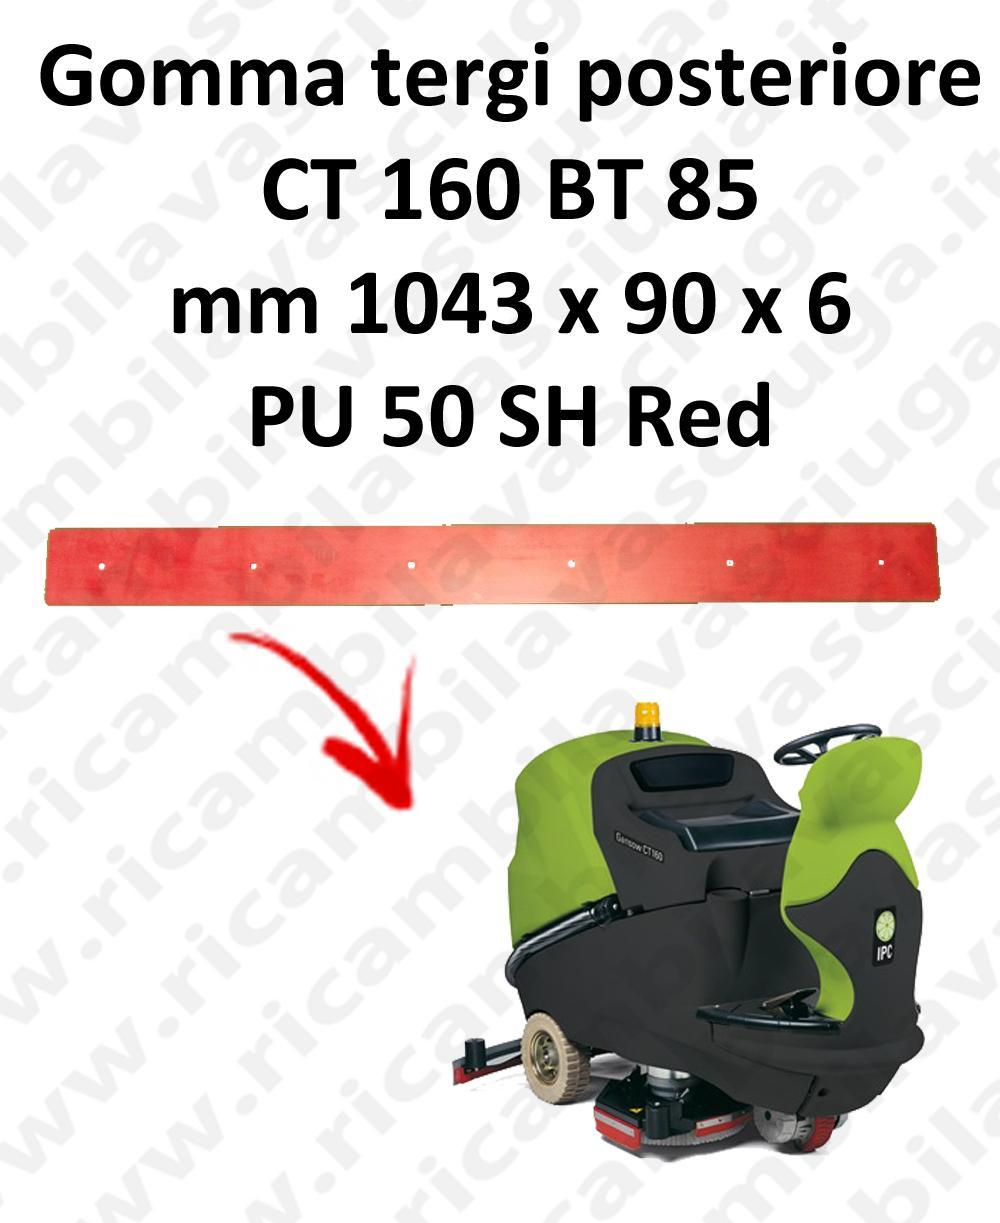 CT 160 BT 85 Back Squeegee rubber for squeegee IPC